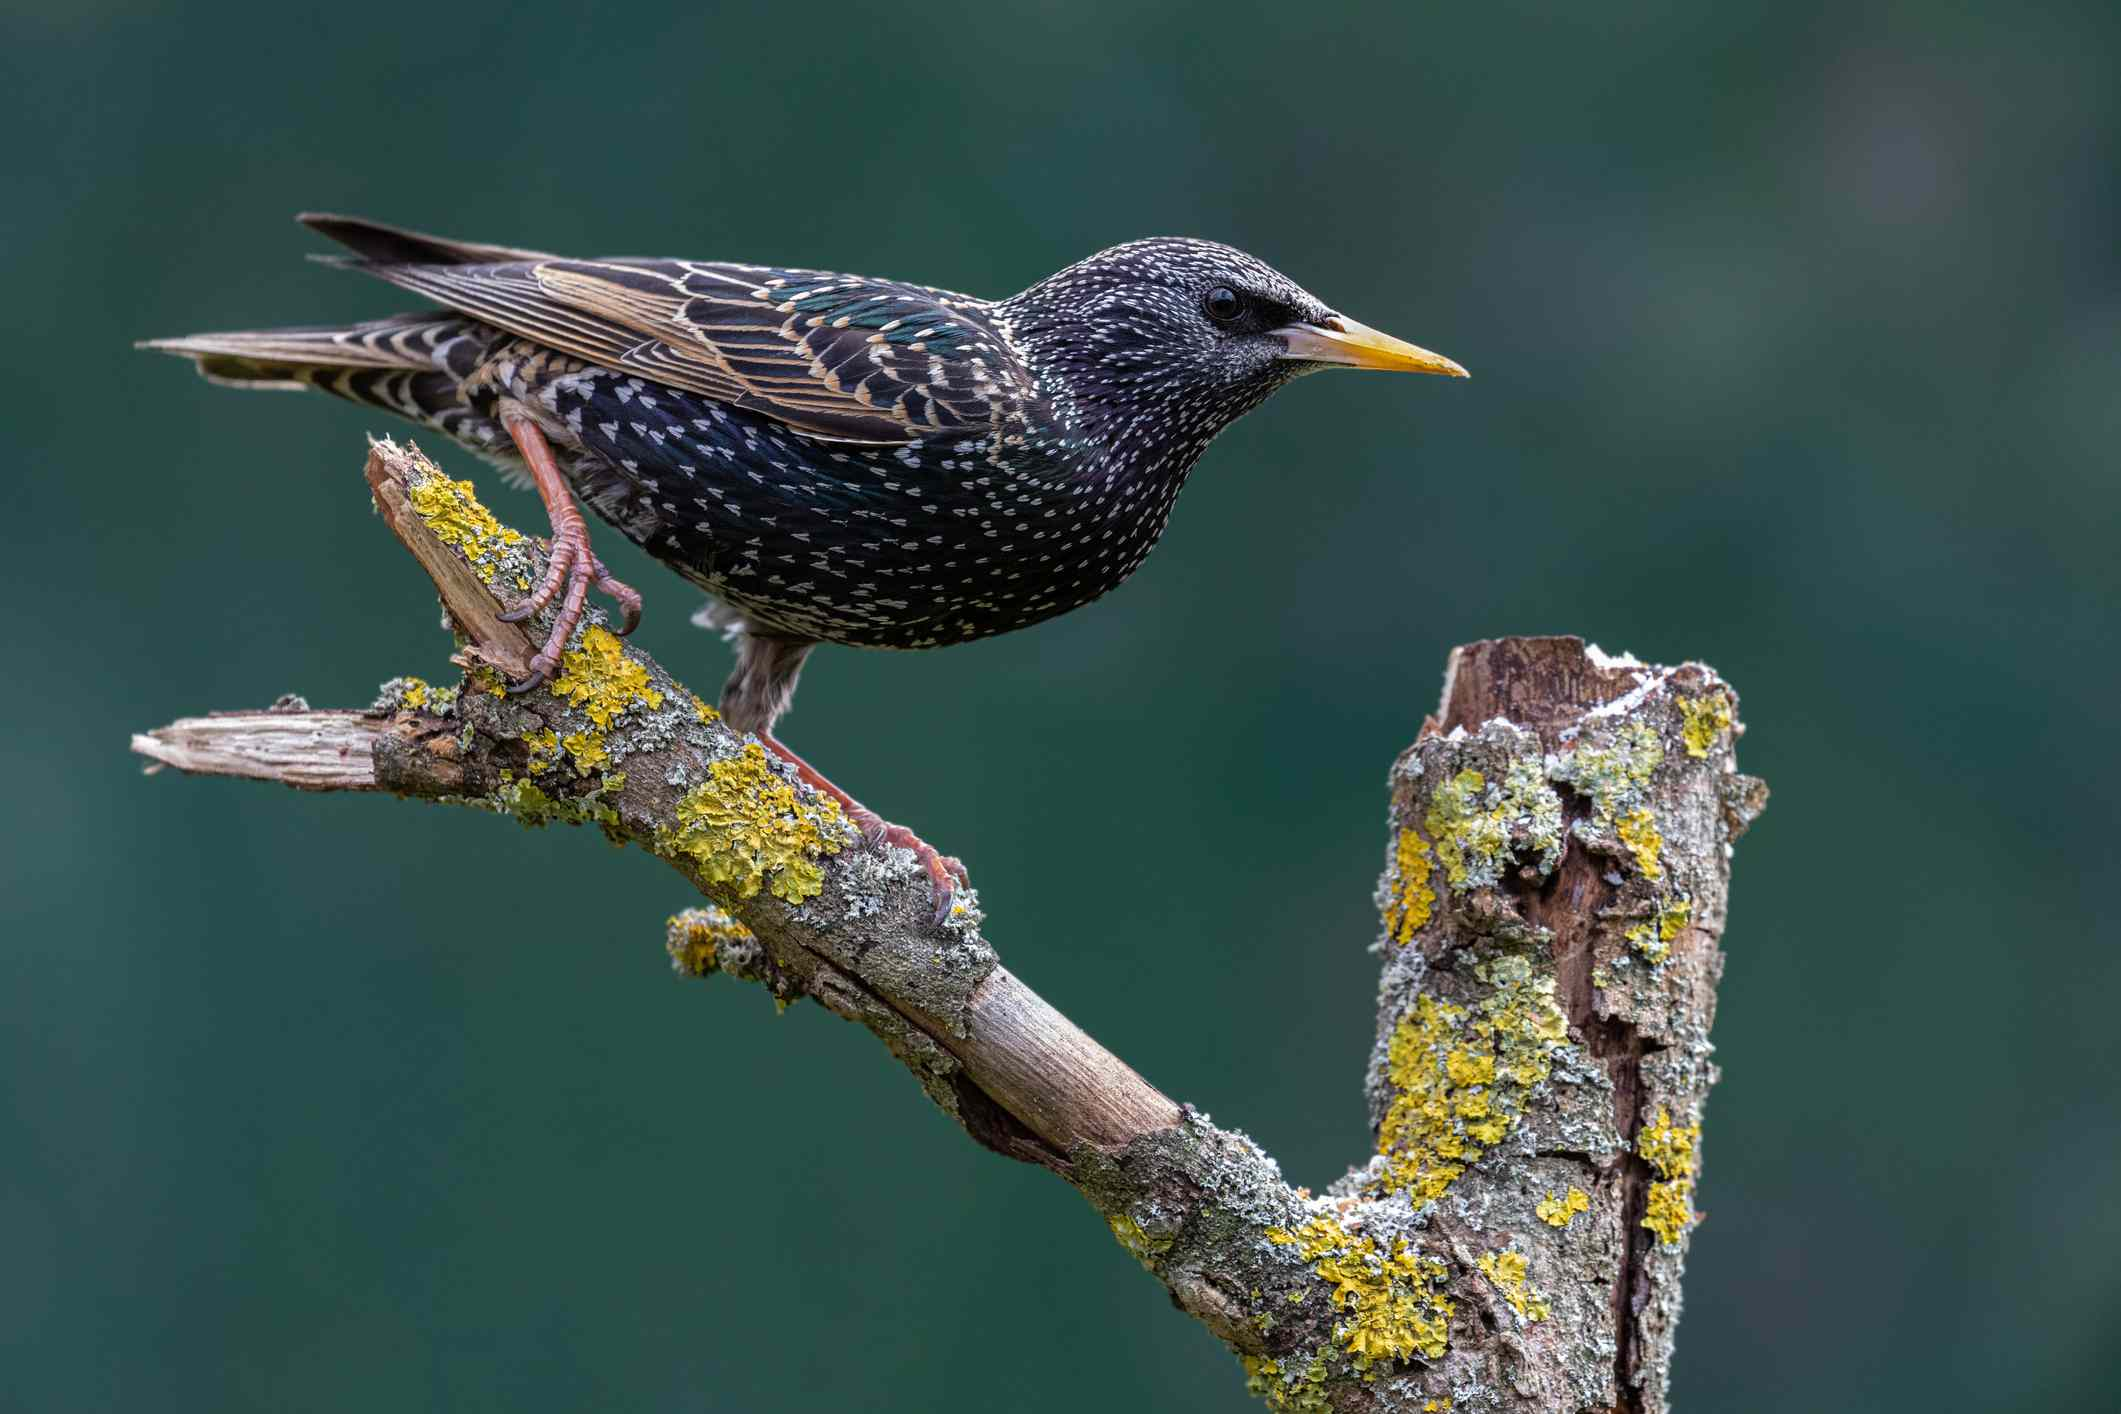 A dark bird with white speckles perching on a tree limb